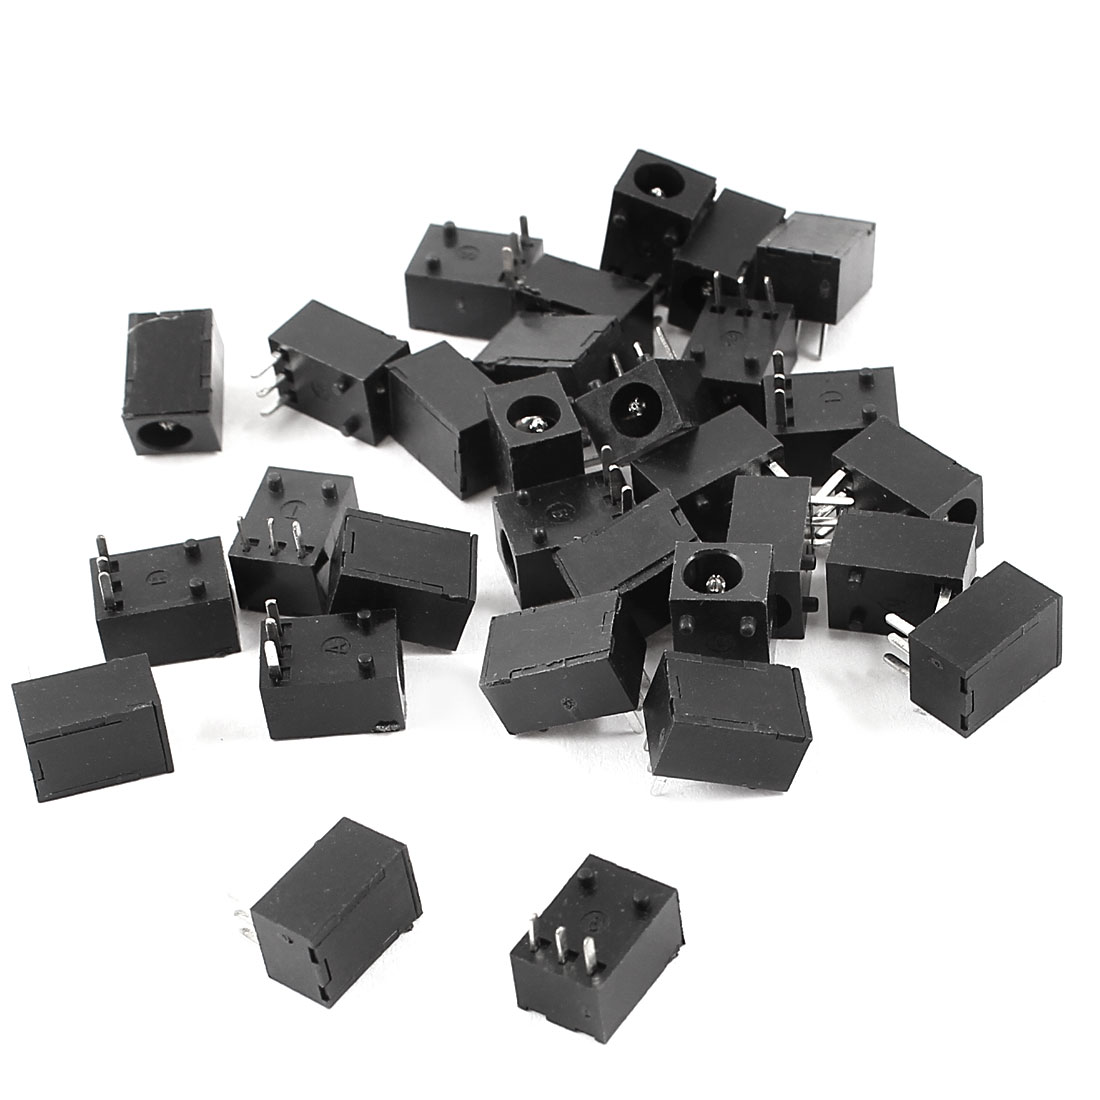 30 Pcs Black 3 Pin 3.5mm x 1.3mm DC Power Jack Socket PCB Mount Connector